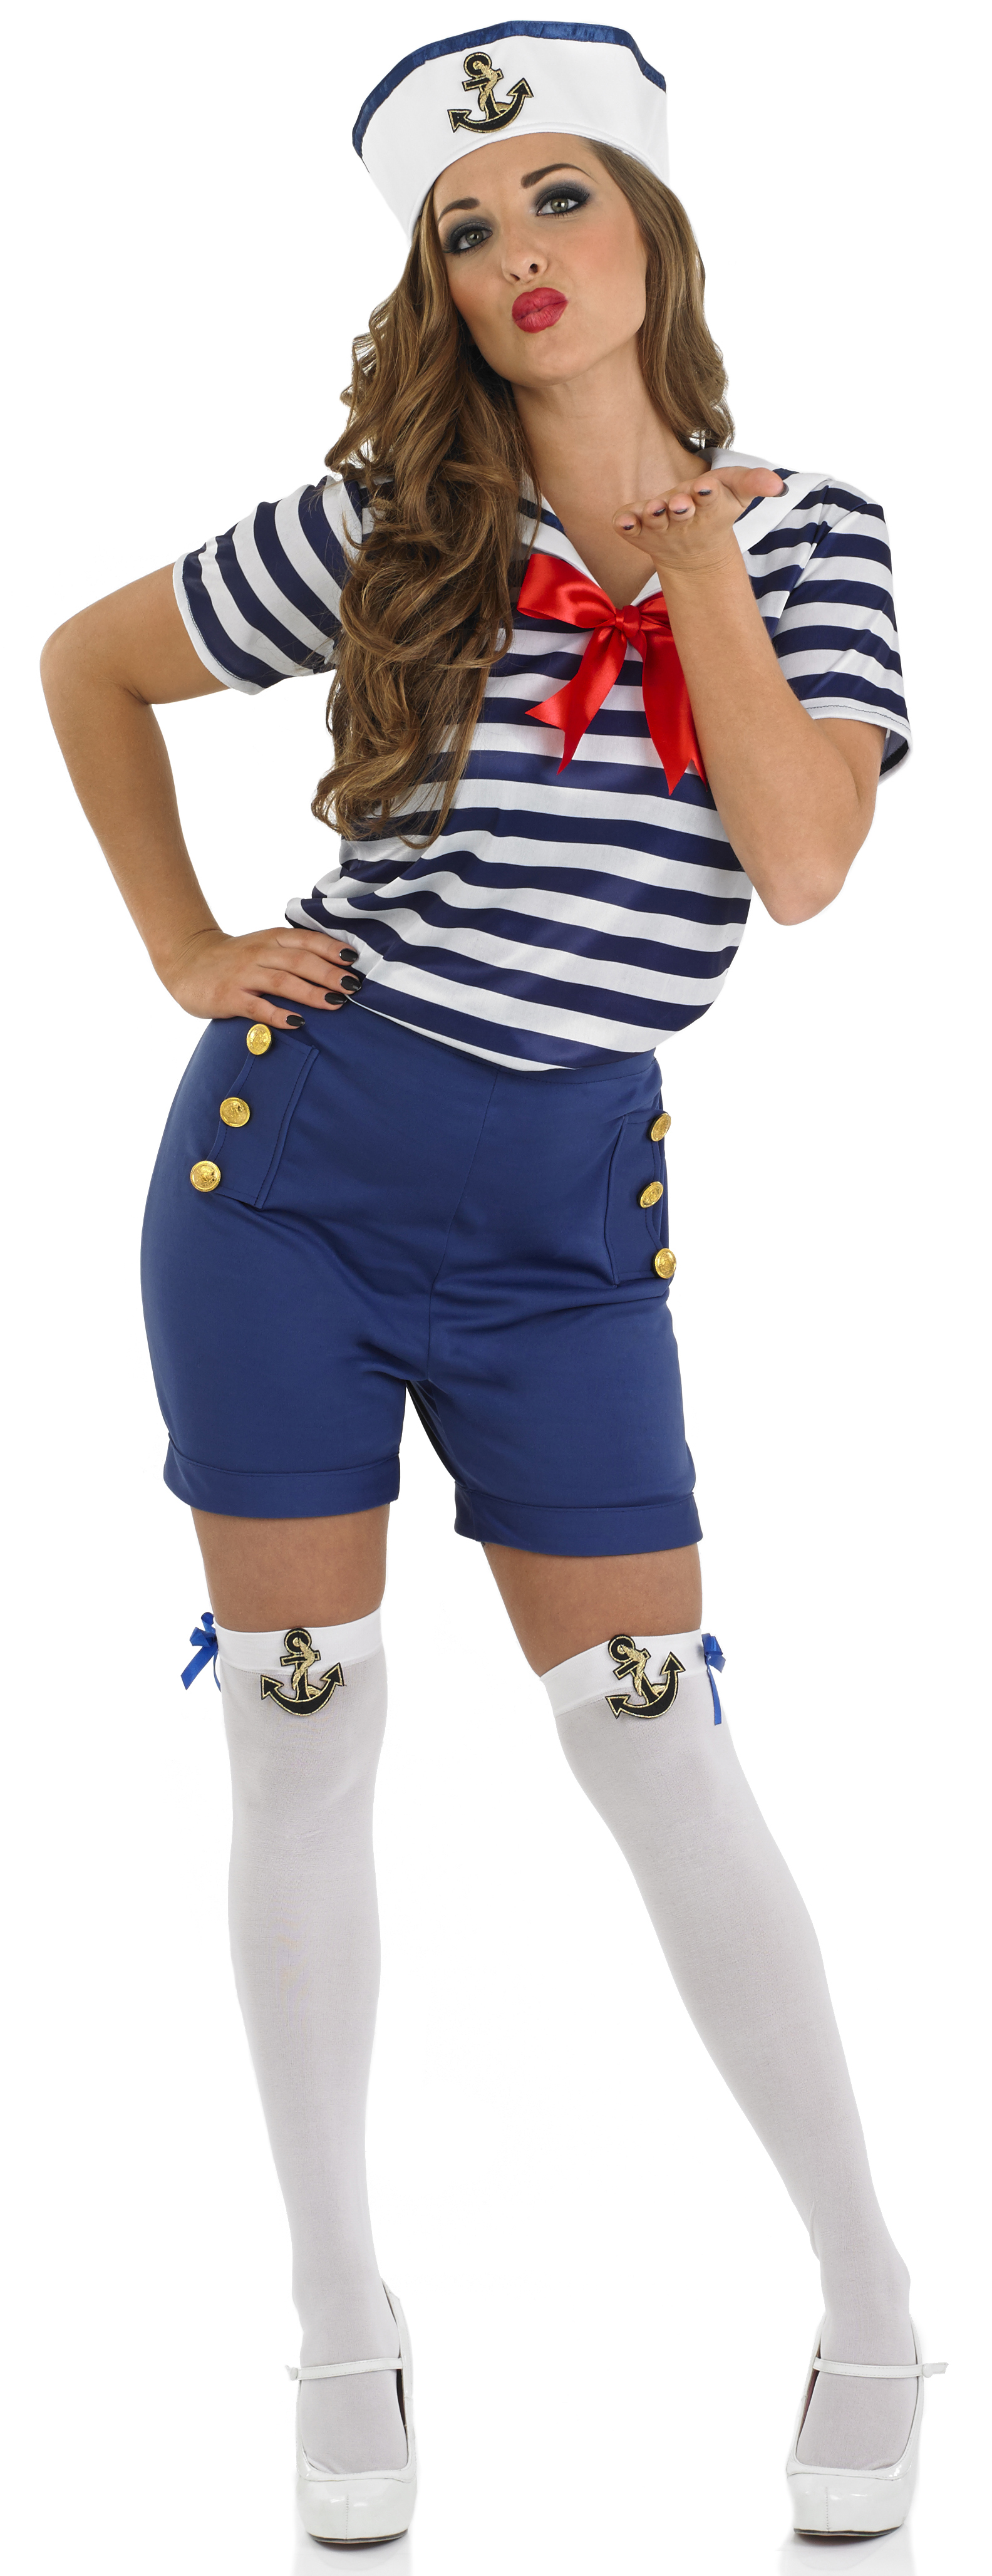 Sentinel Sexy Sailor + Hat Ladies Fancy Dress Military Uniform Womens Adult Navy Costume  sc 1 st  eBay & Sexy Sailor + Hat Ladies Fancy Dress Military Uniform Womens Adult ...